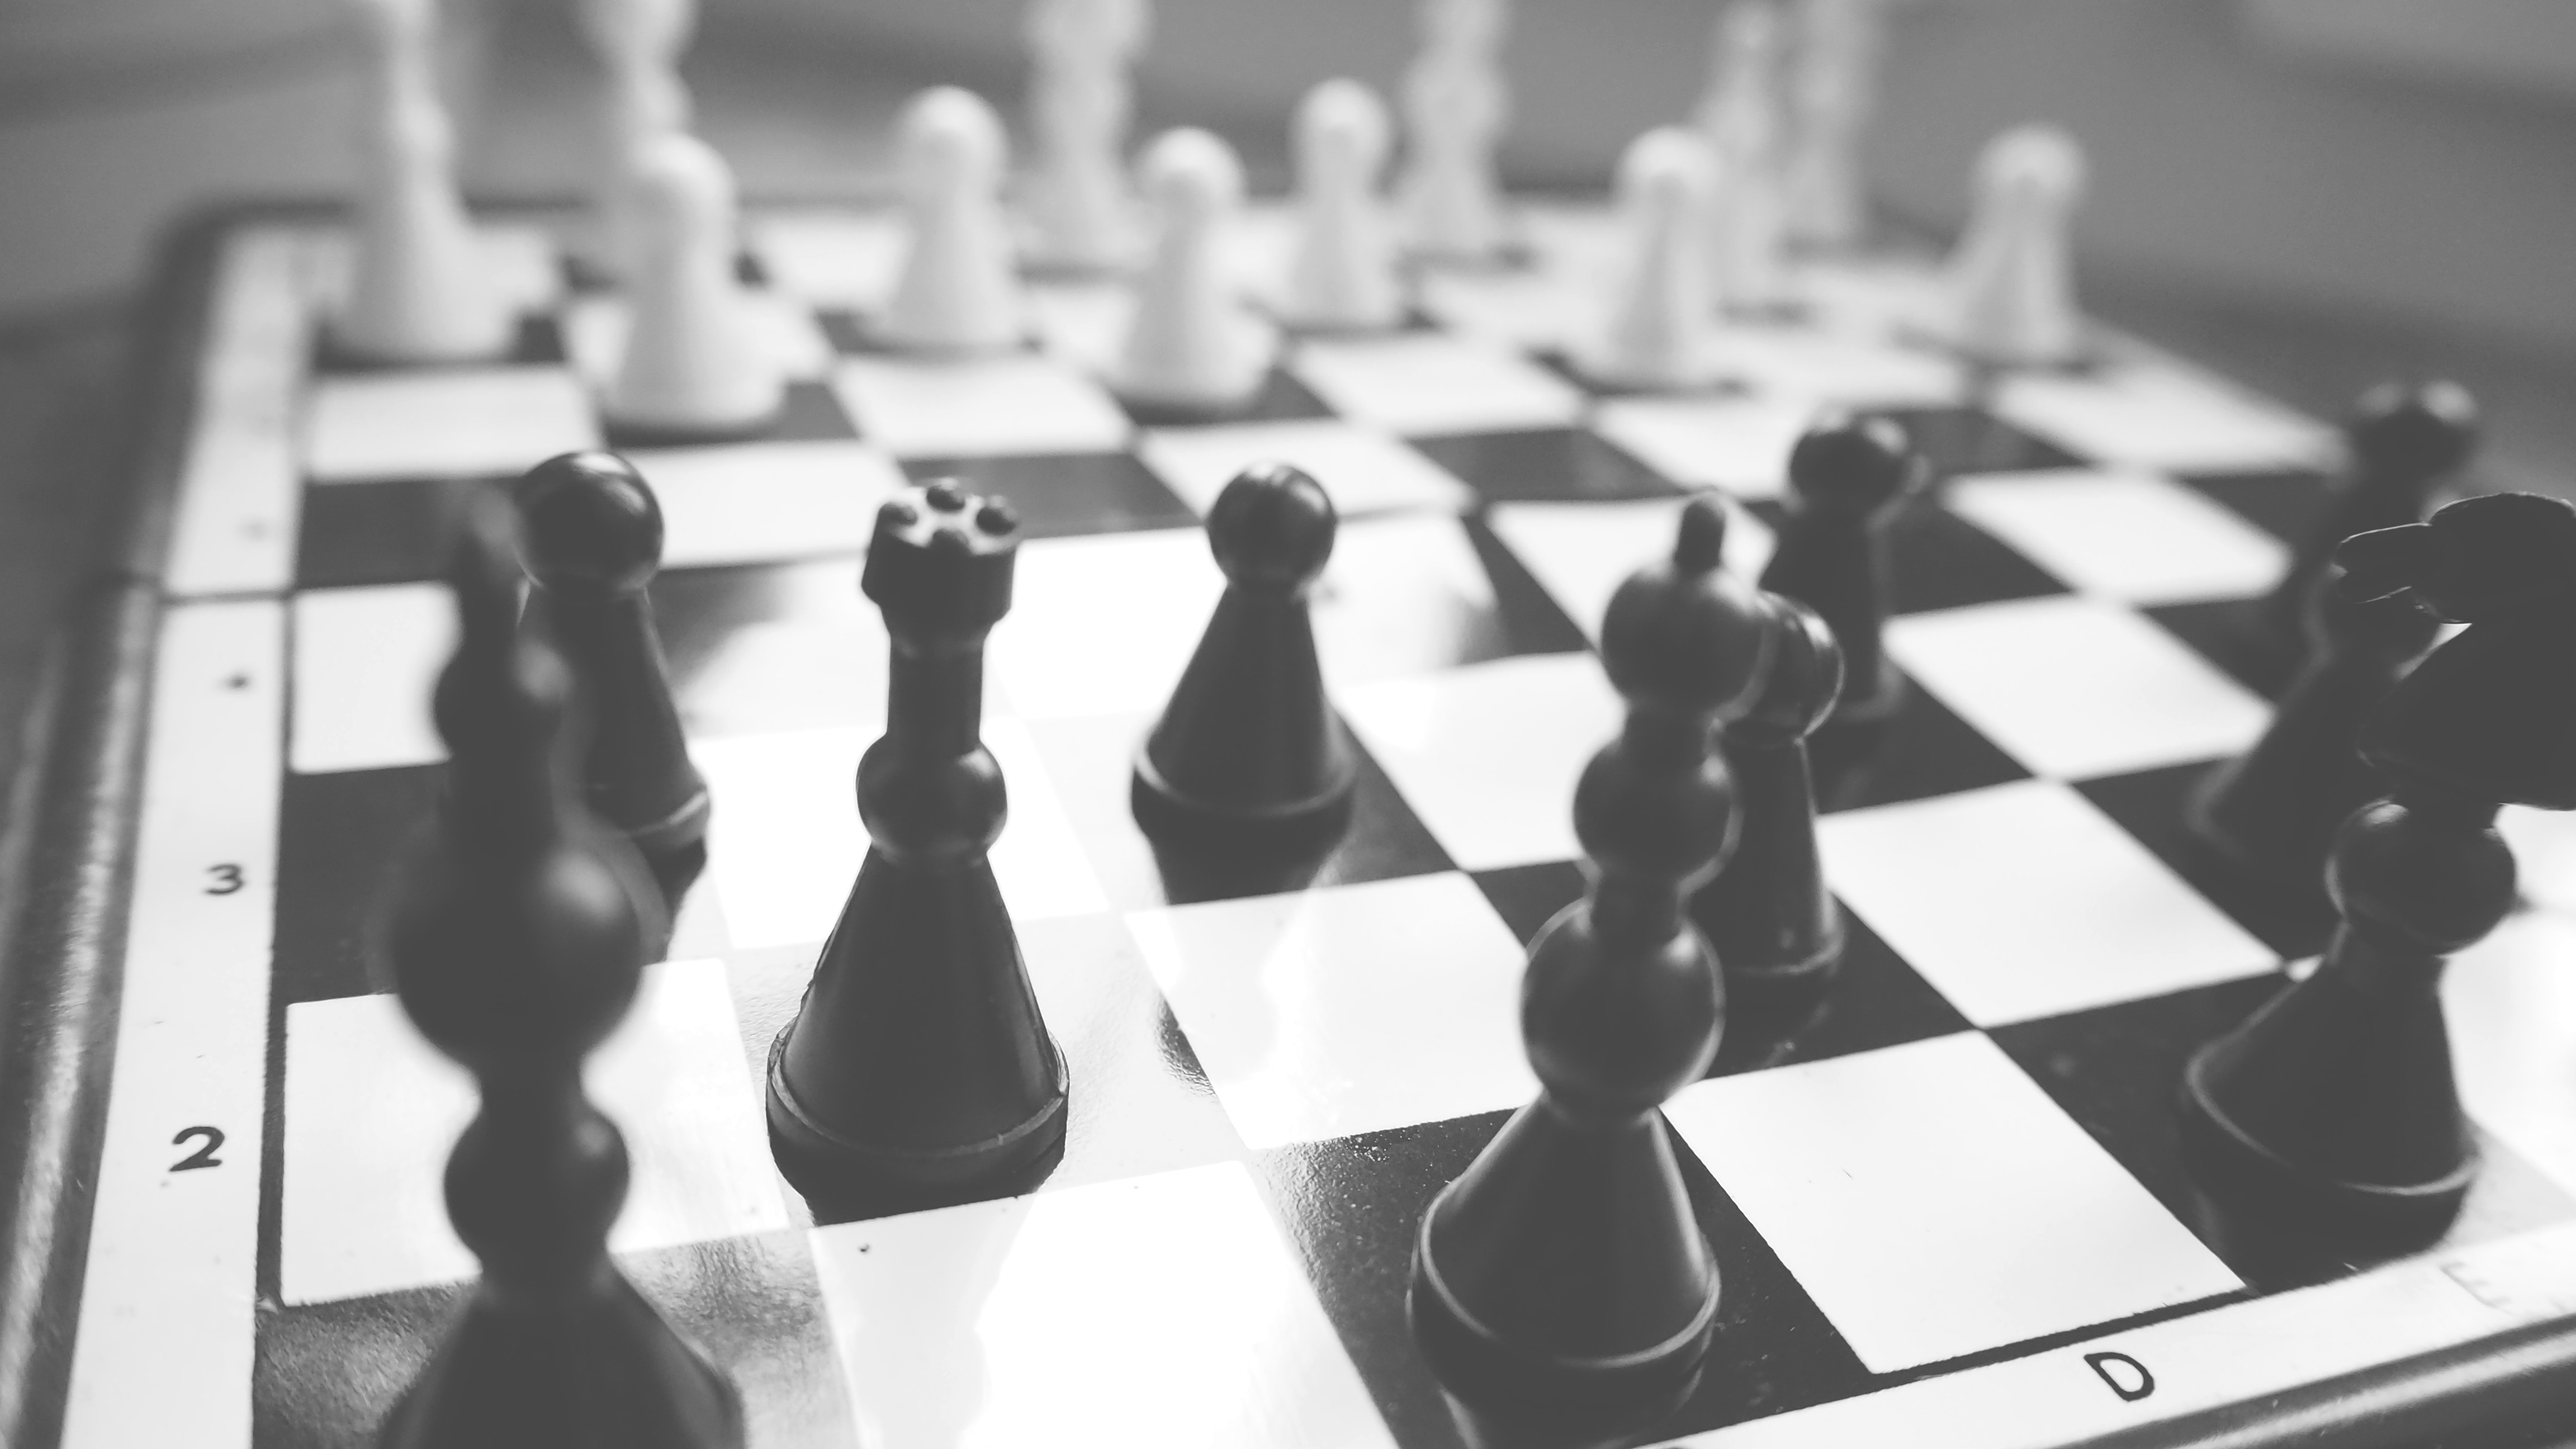 Close-up of Chess Pieces, Black-and-white, Queen, Pawn, Move, HQ Photo